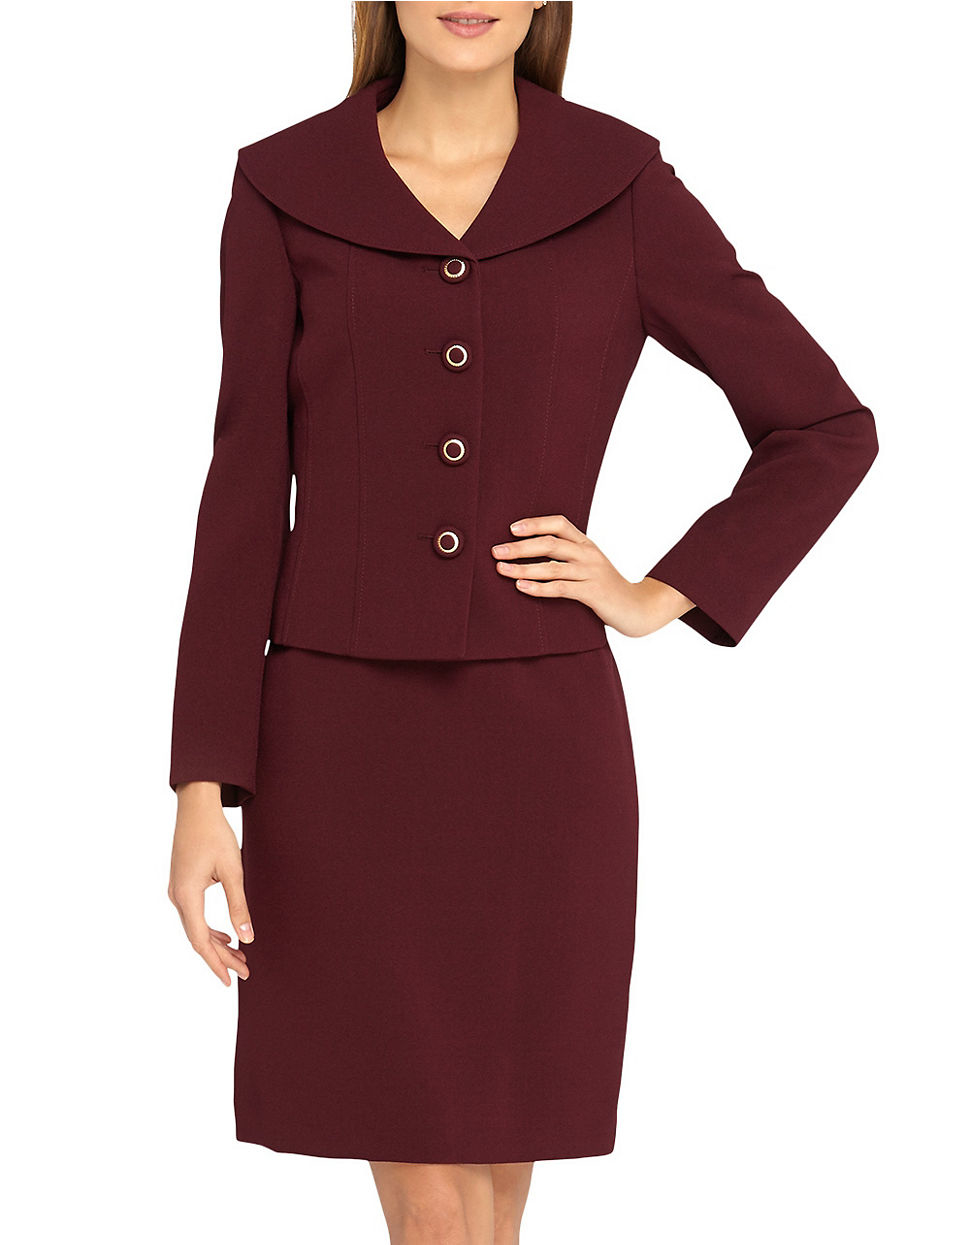 Shawl Collar Skirt Suit 66